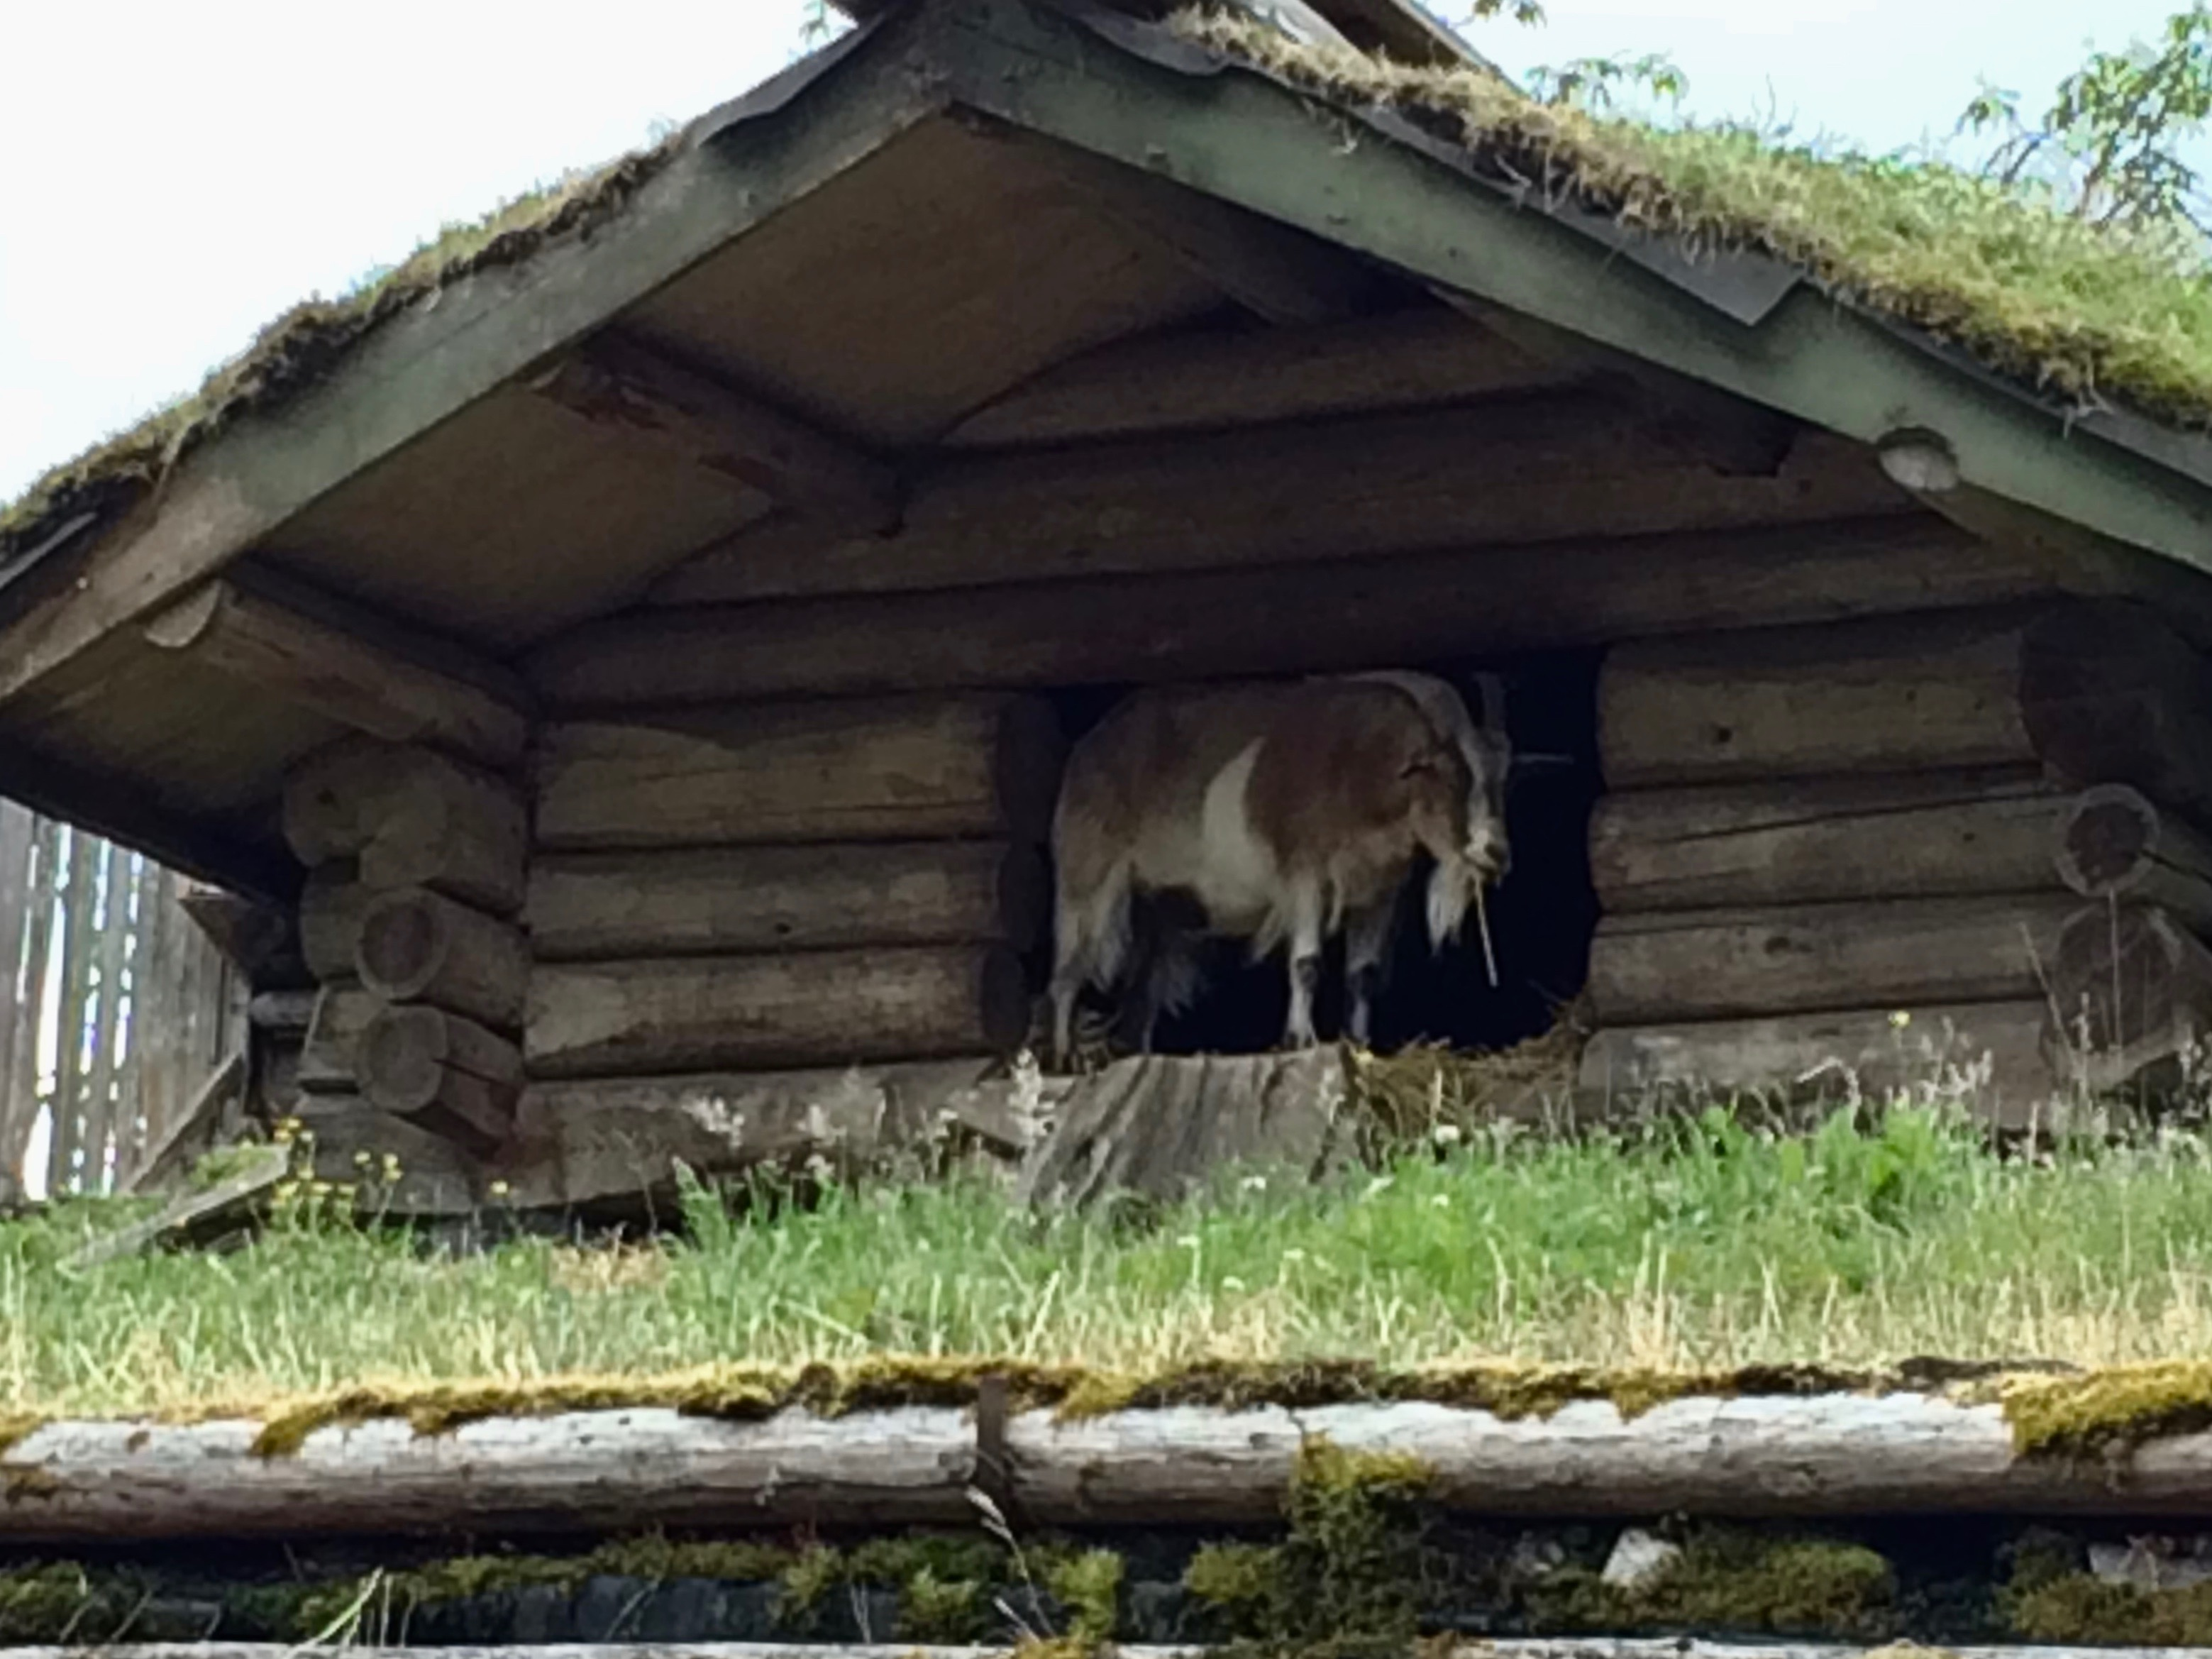 A goat on the roof?